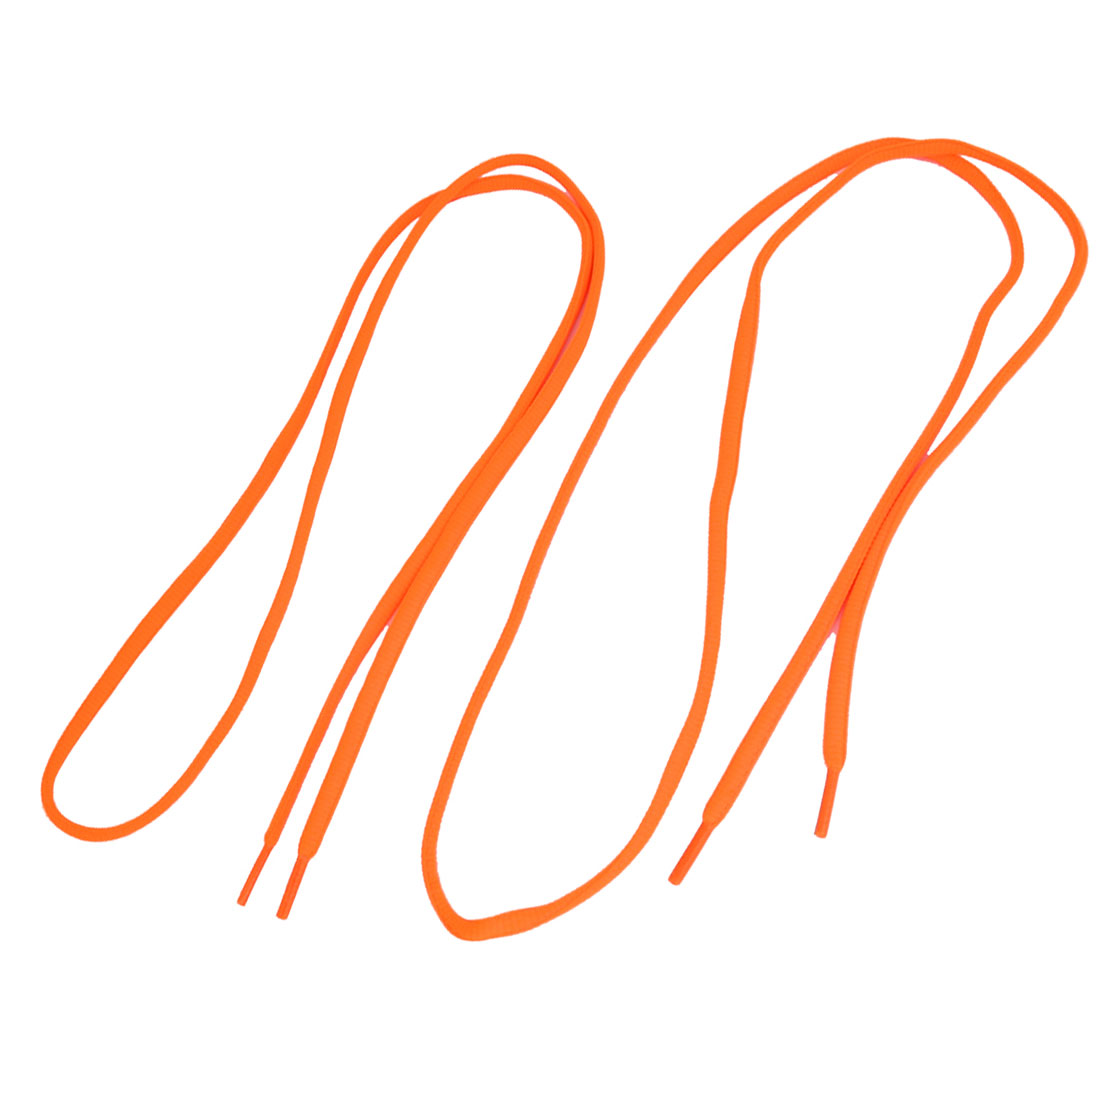 "Pair Orange Plastic Tip Round Shoelaces Sneakers Boots Shoes Laces Strings Cords 43"" Long"